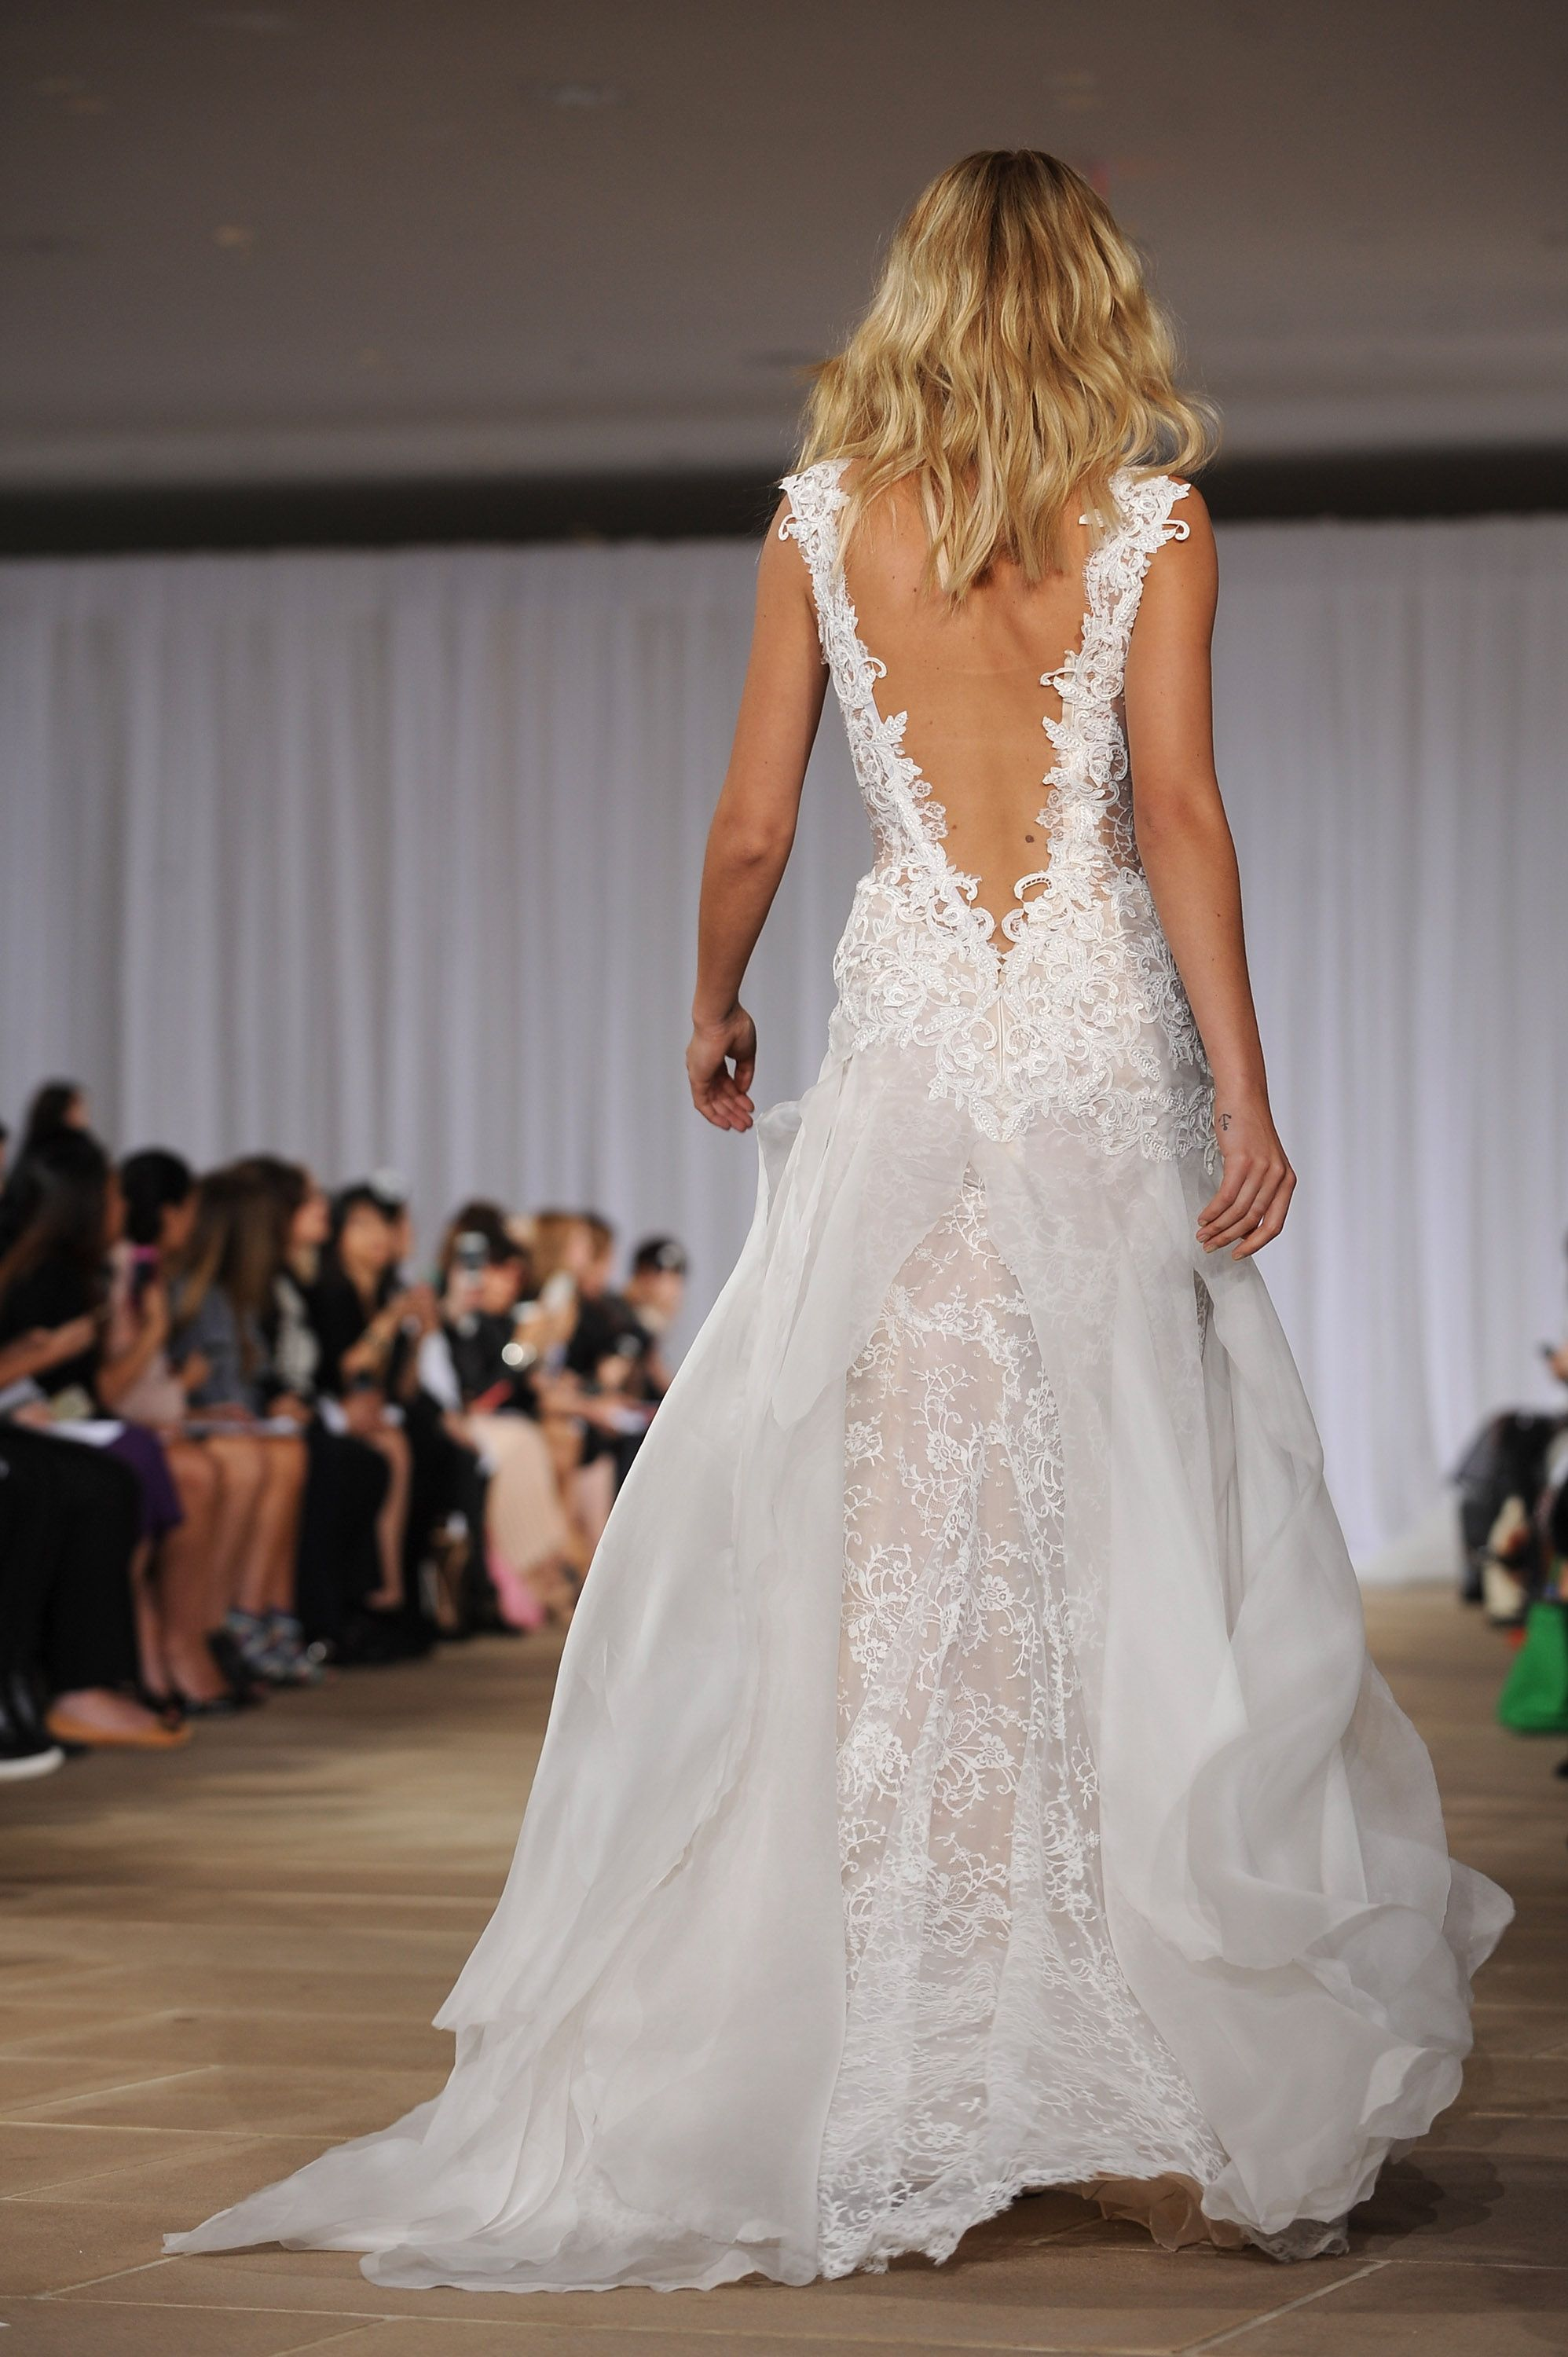 Pretty Back Details on Wedding Dresses-Winter Wedding Dresses With ...